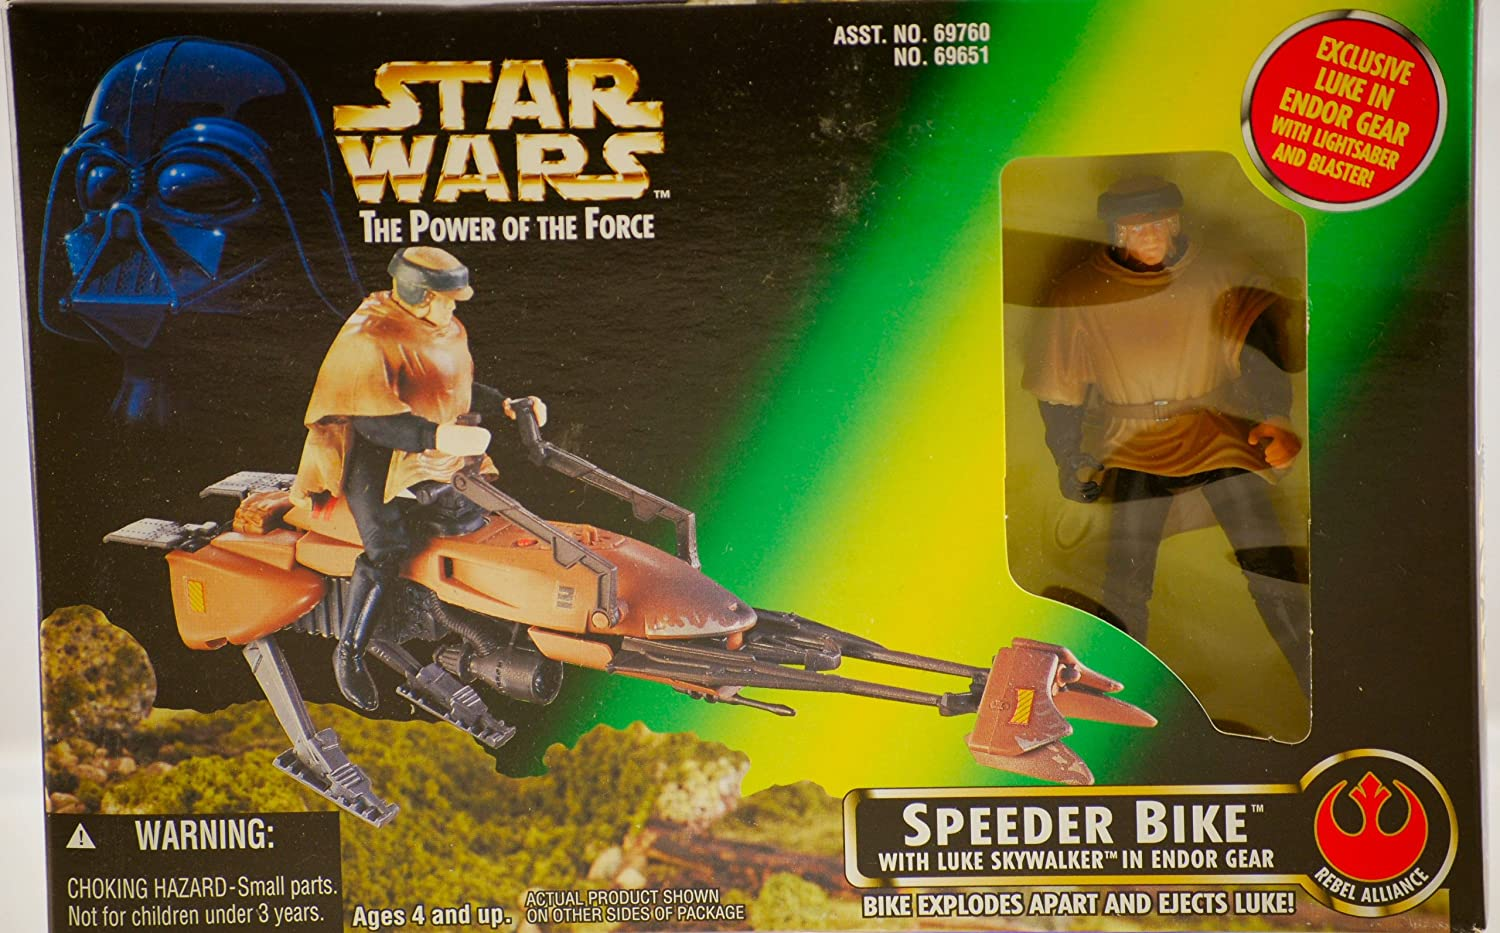 Star Wars - The Power Of The Force (POTF) - Luke Action Figure in Endor Gear with Speeder Bike -Hasbro / Kenner